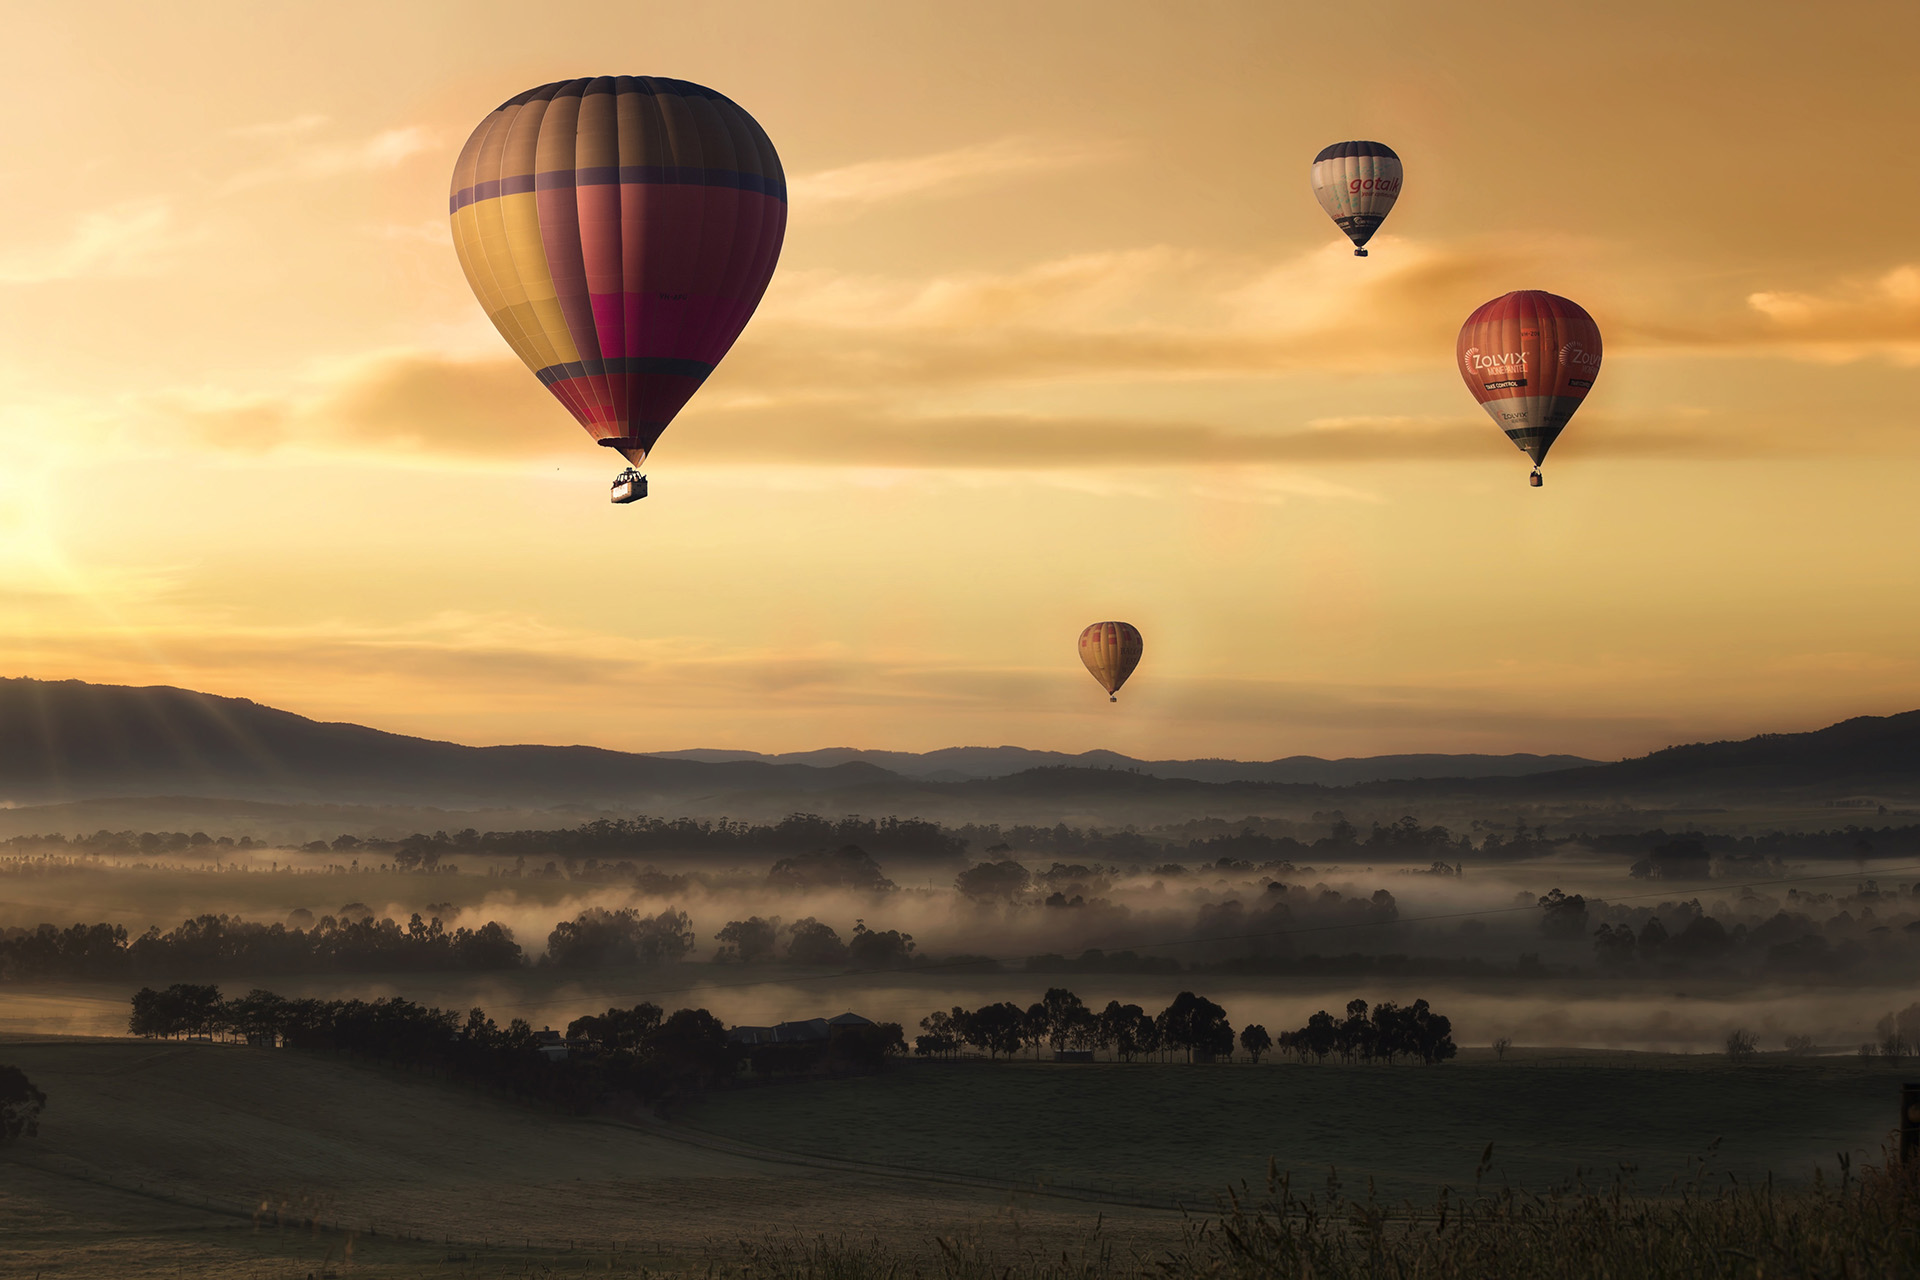 Four hot air balloons flying at dusk